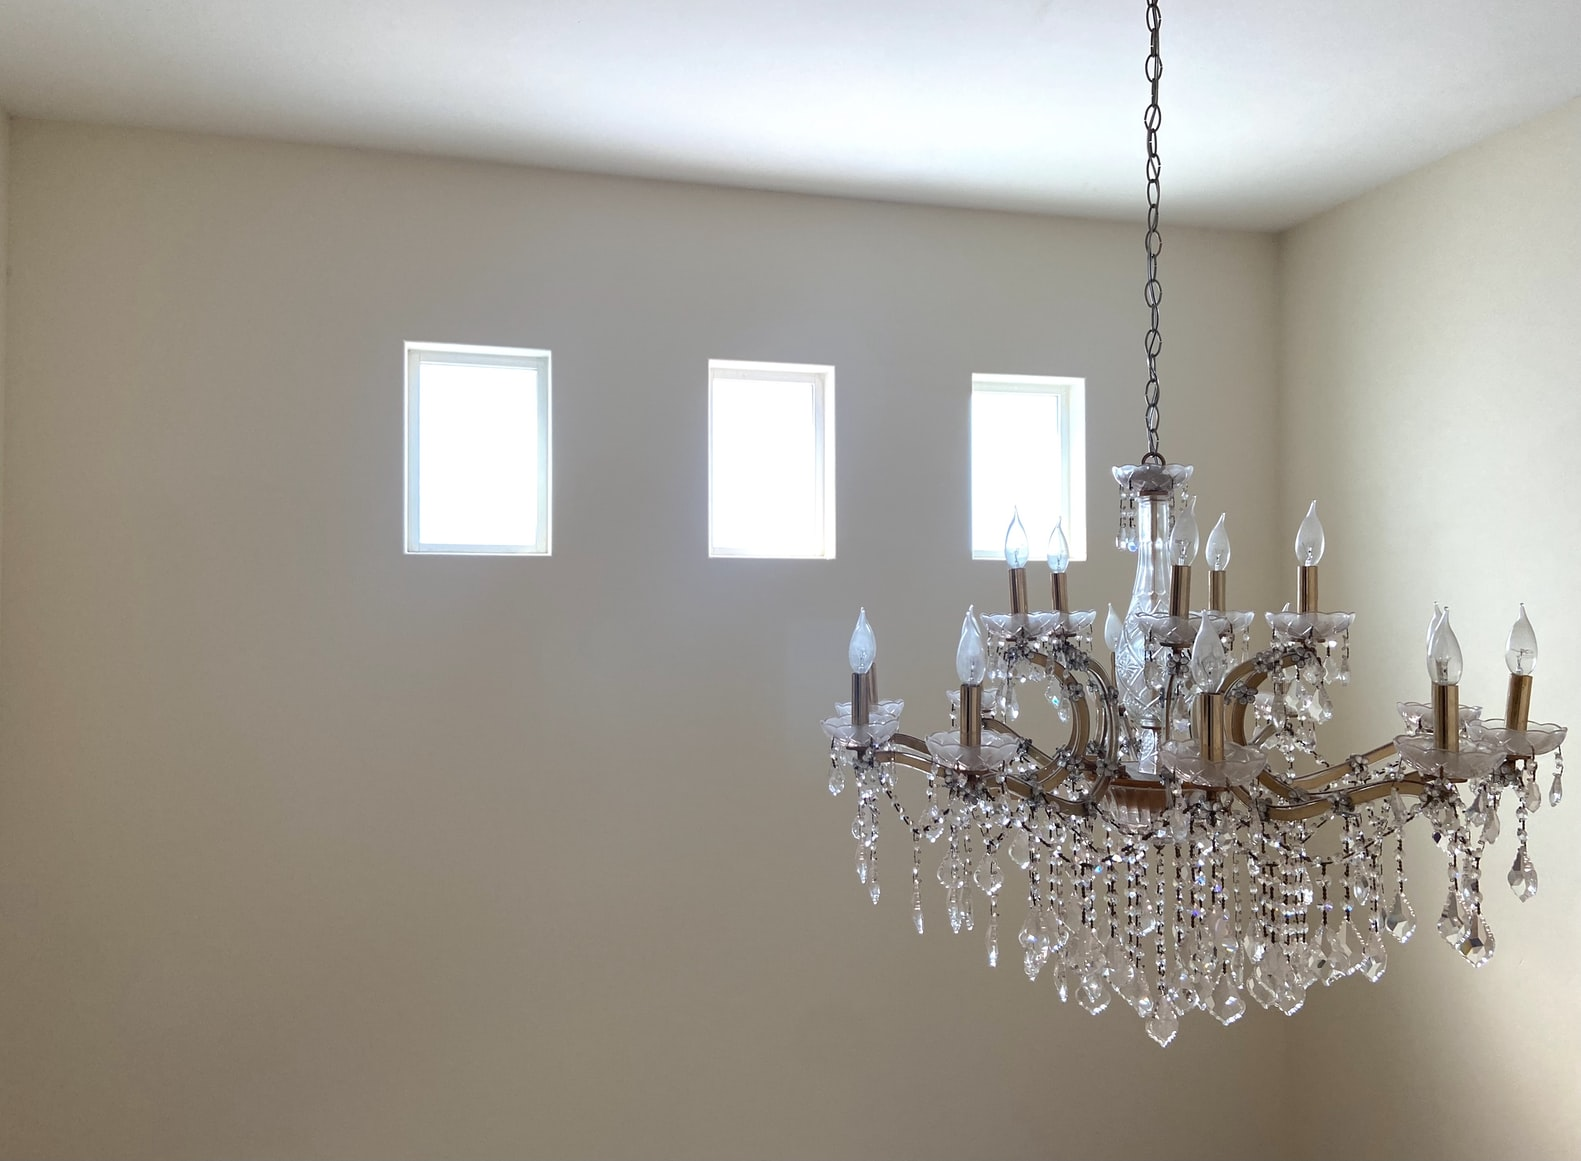 how big should a chandelier be over a round table